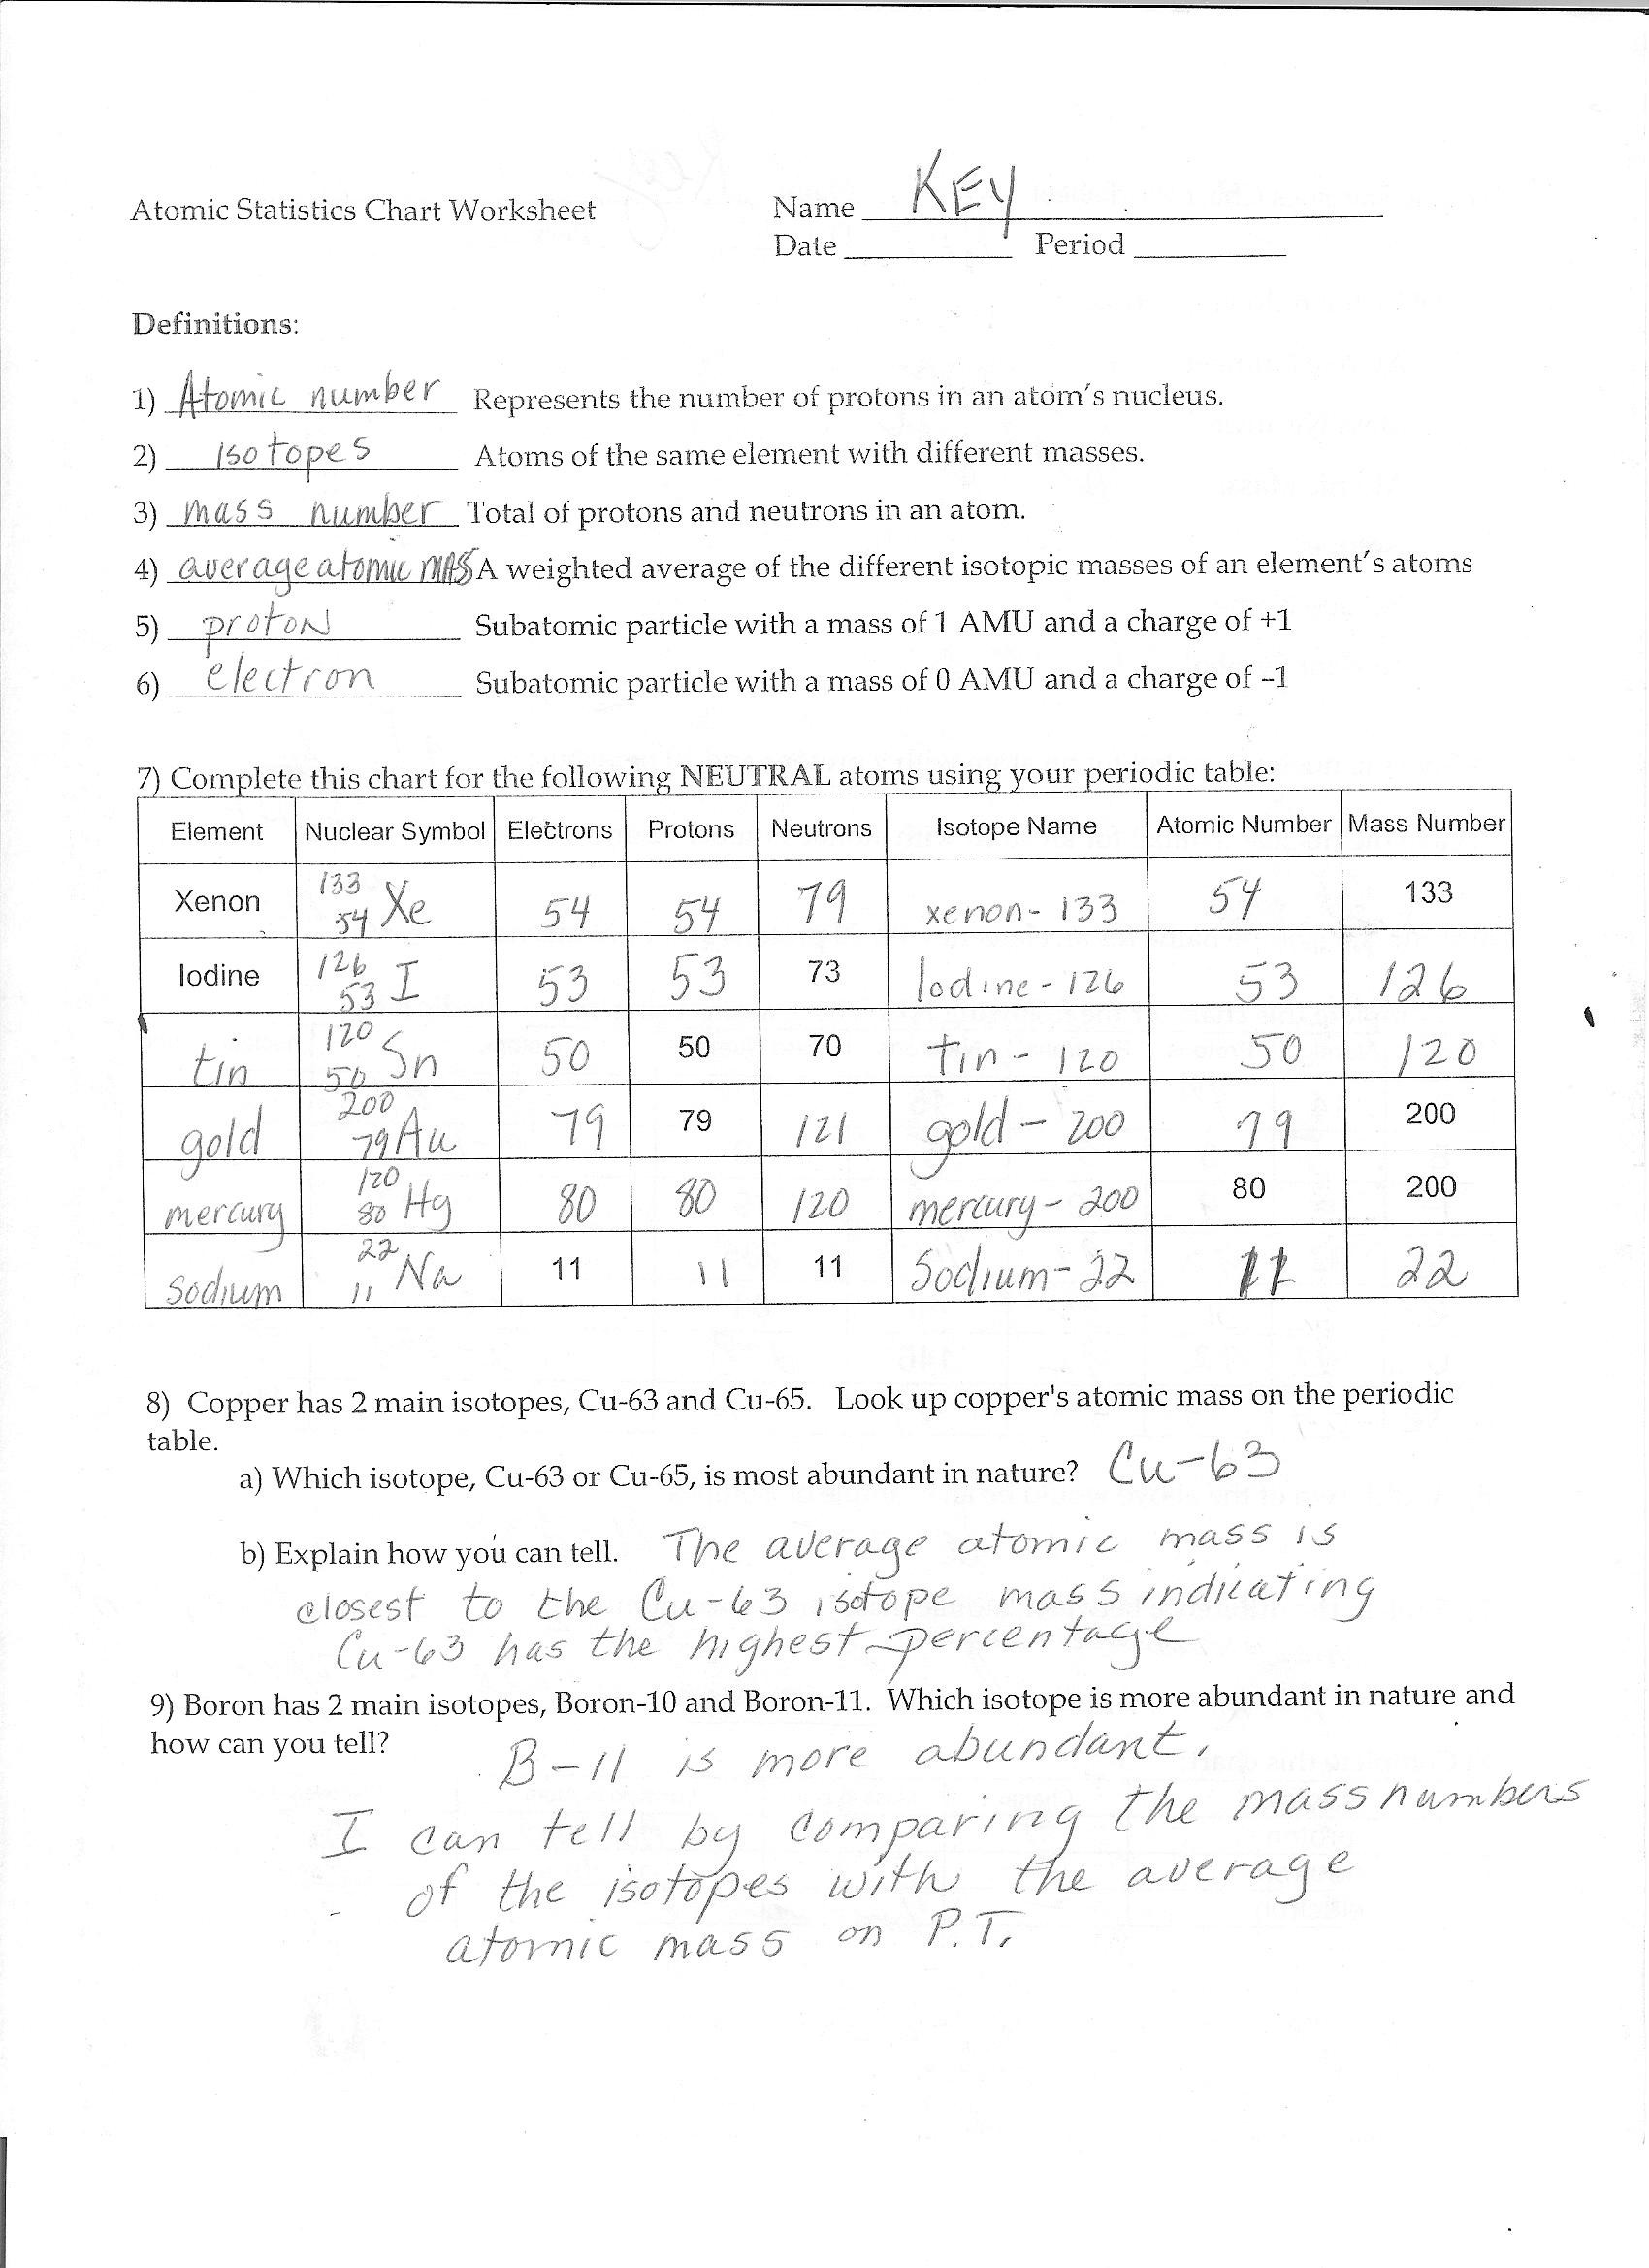 Atomic theory Worksheet Answers